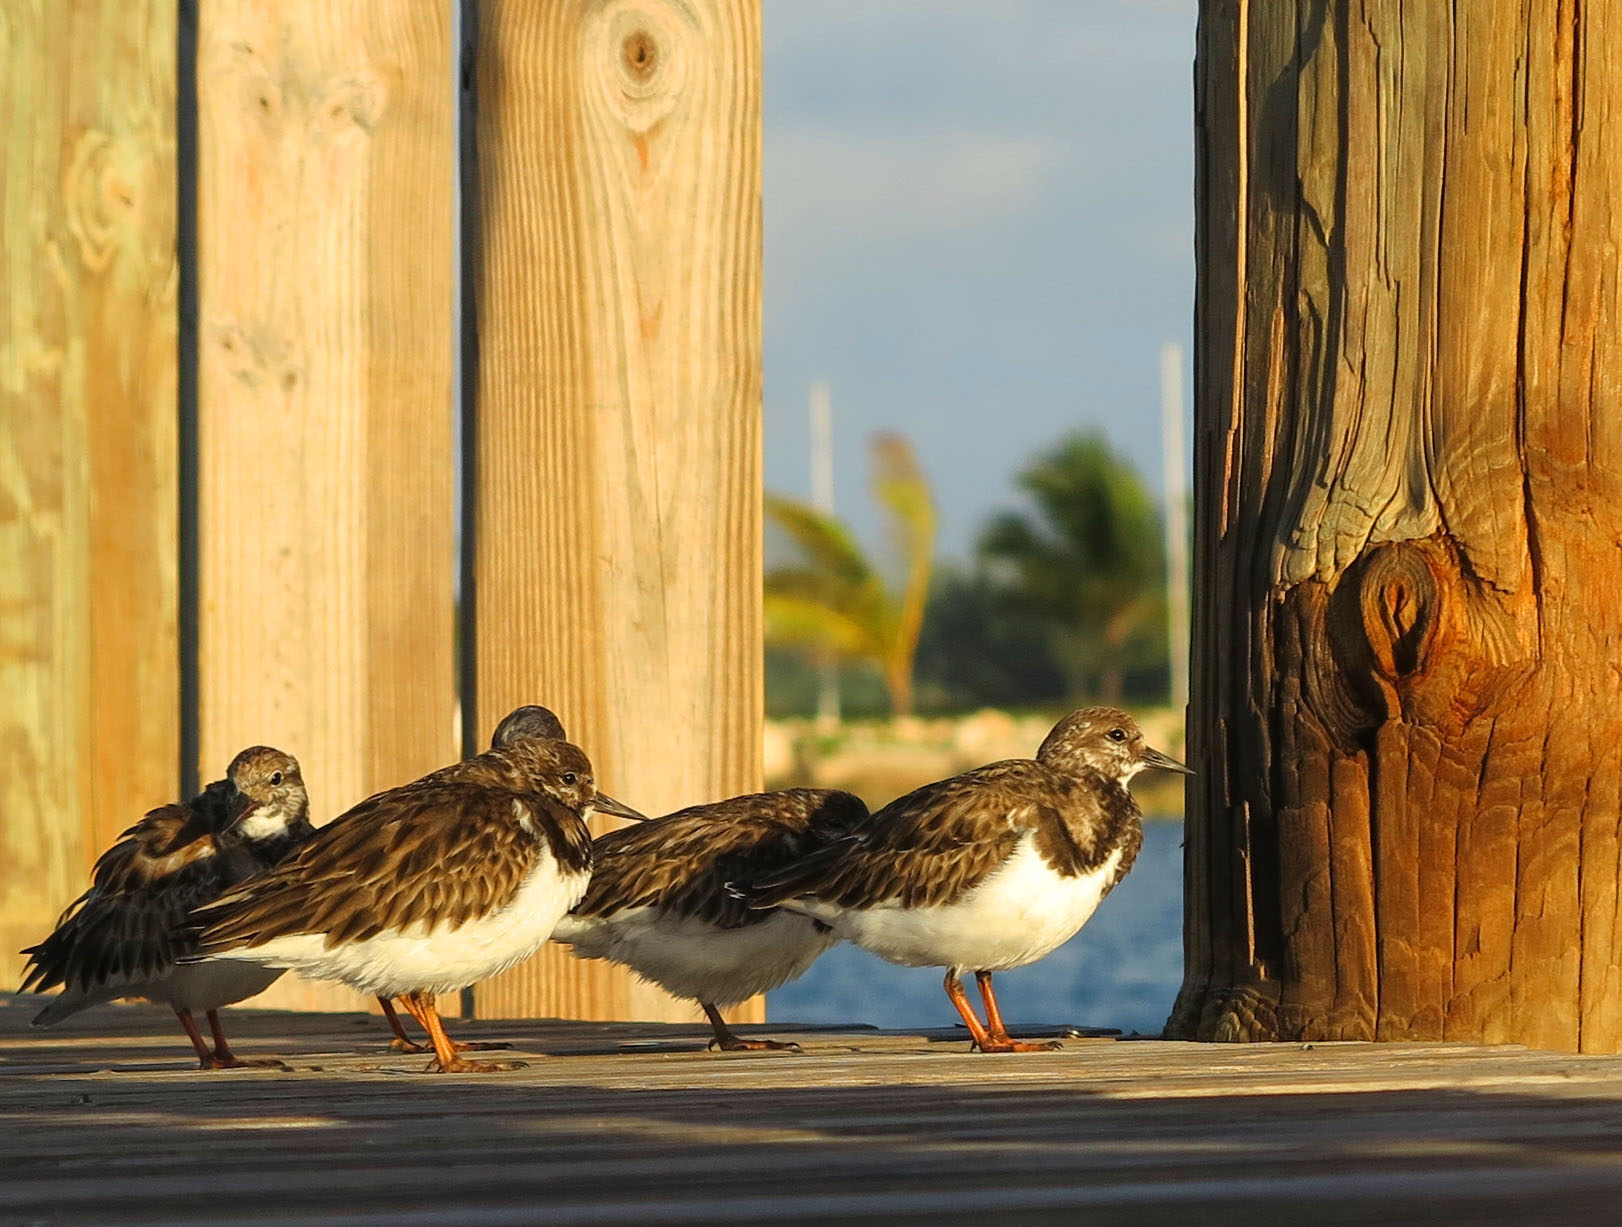 bahamas, abaco, green turtle cay, wildlife, birds